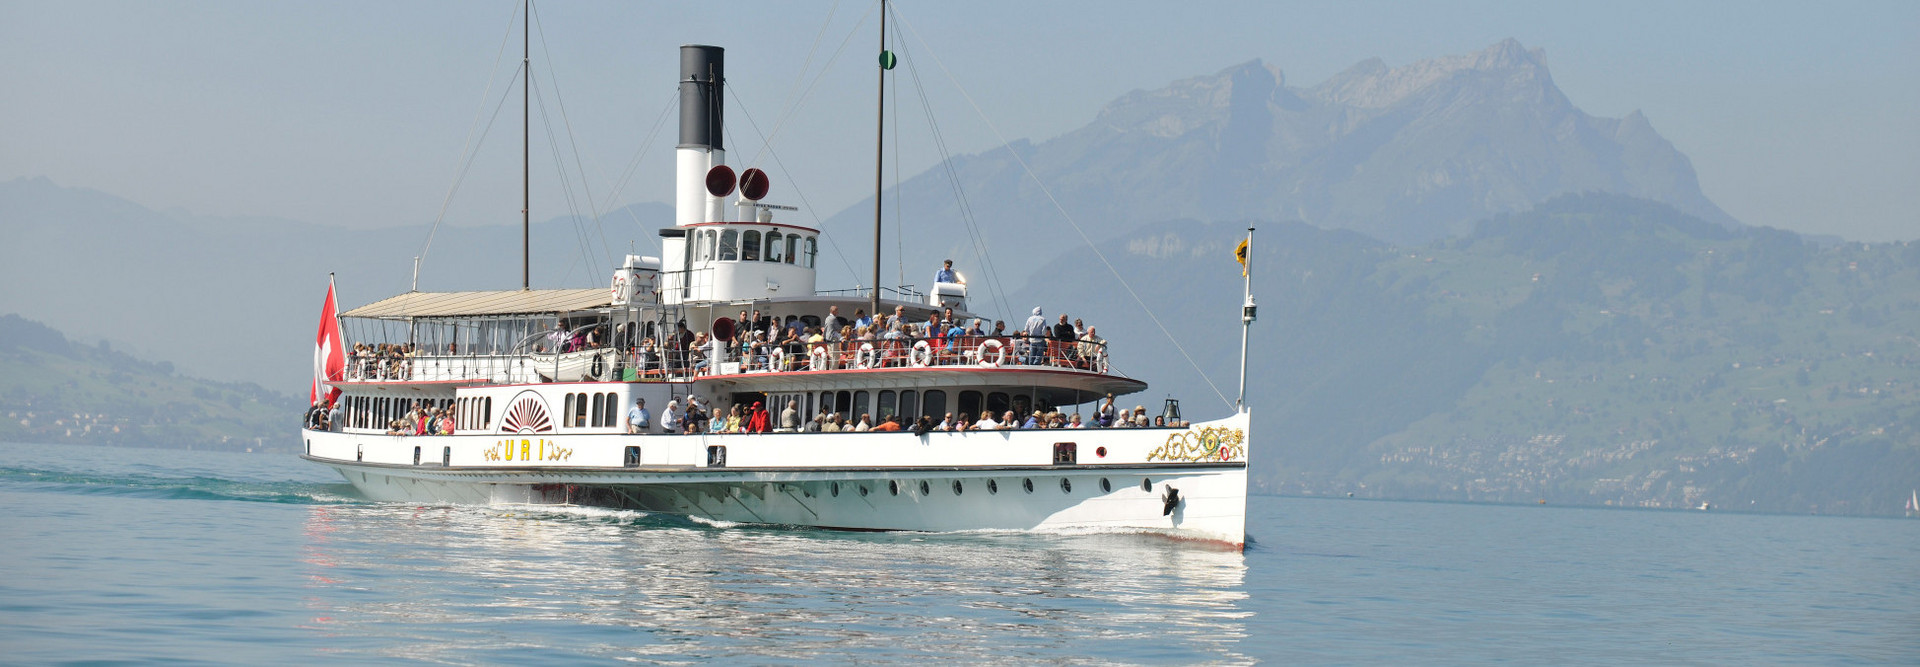 The steamship Uri sails in nice weather. In the background, the Pilatus can be seen.